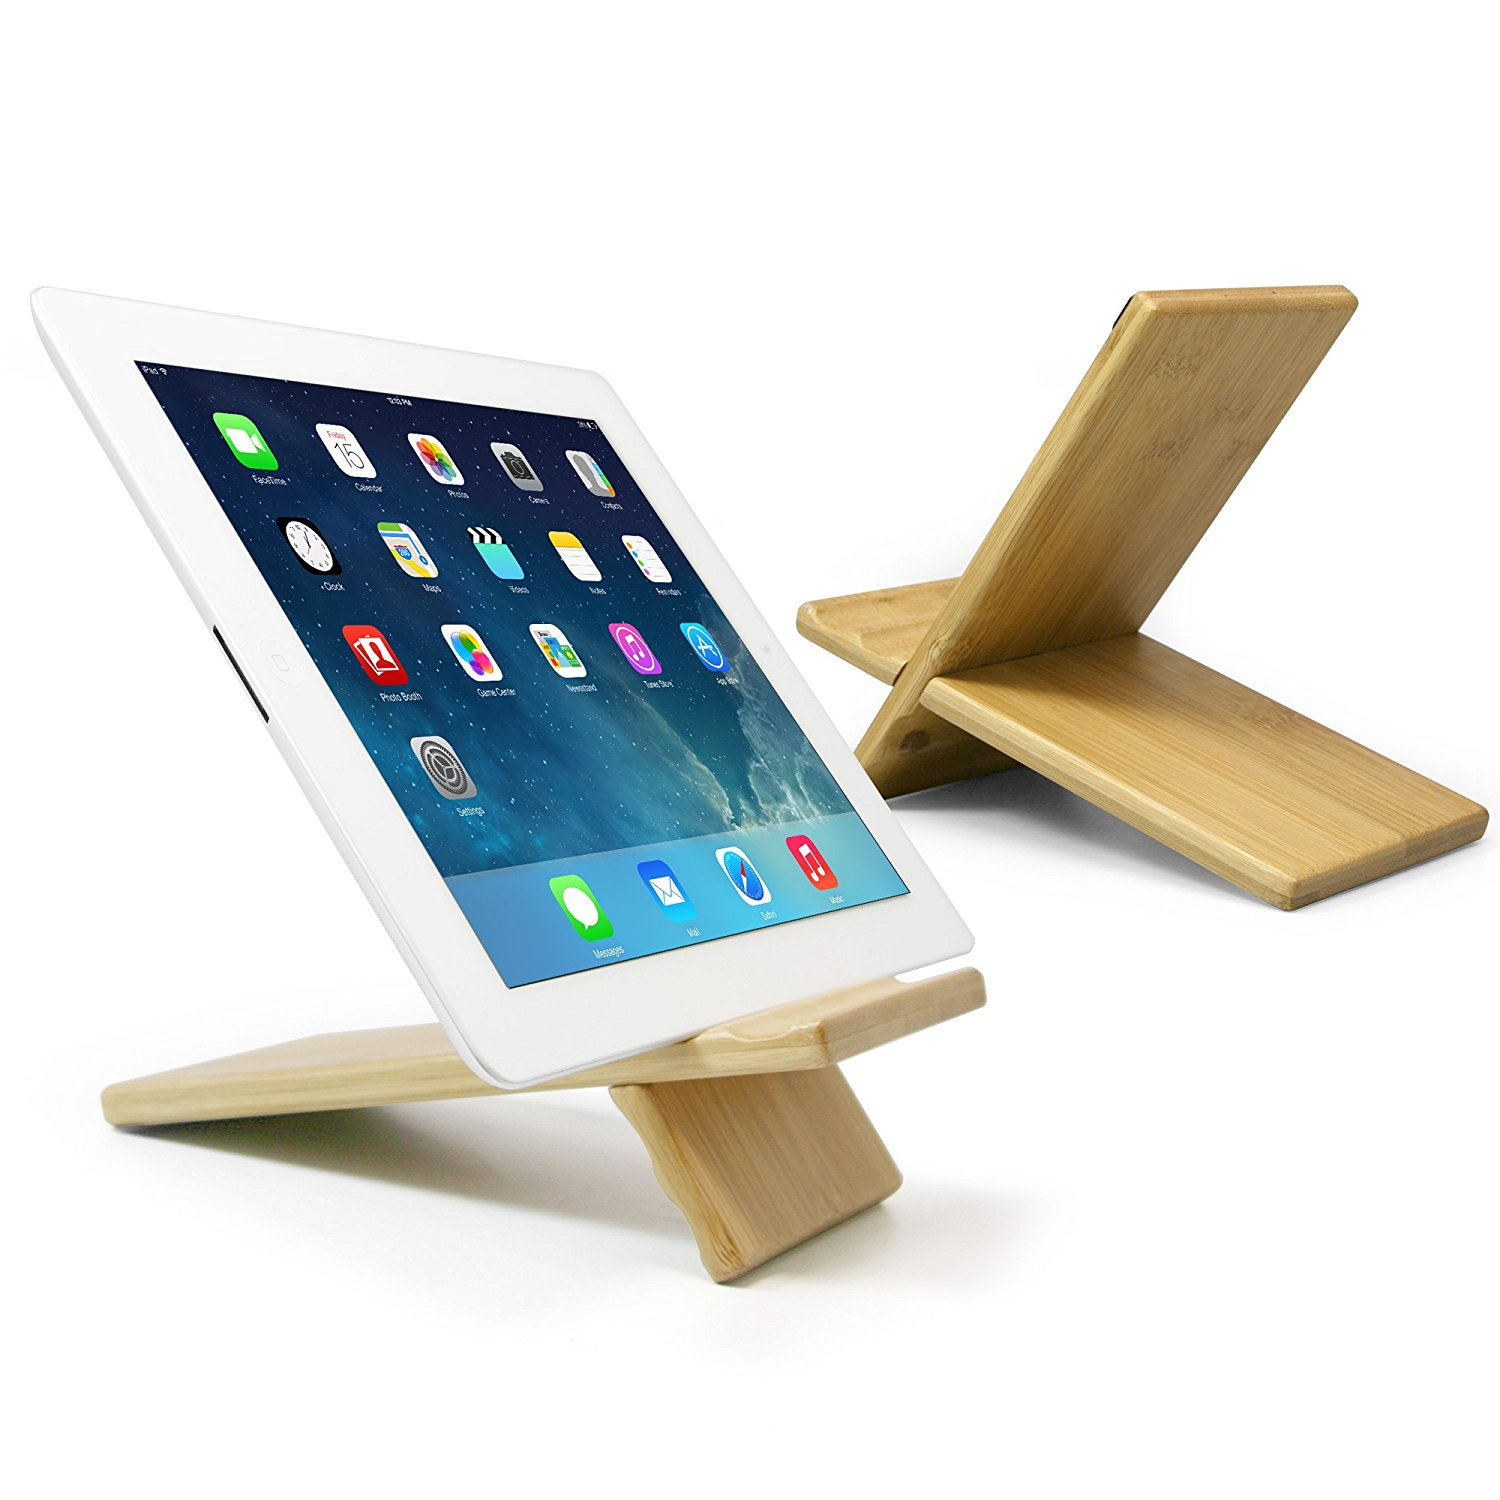 SunSmart Natural Wood Bamboo Hard Panel Stand for iPhone,iPad,Samsung Mobile Phone,Tablet PCs Artwork and More eReaders Bamboo